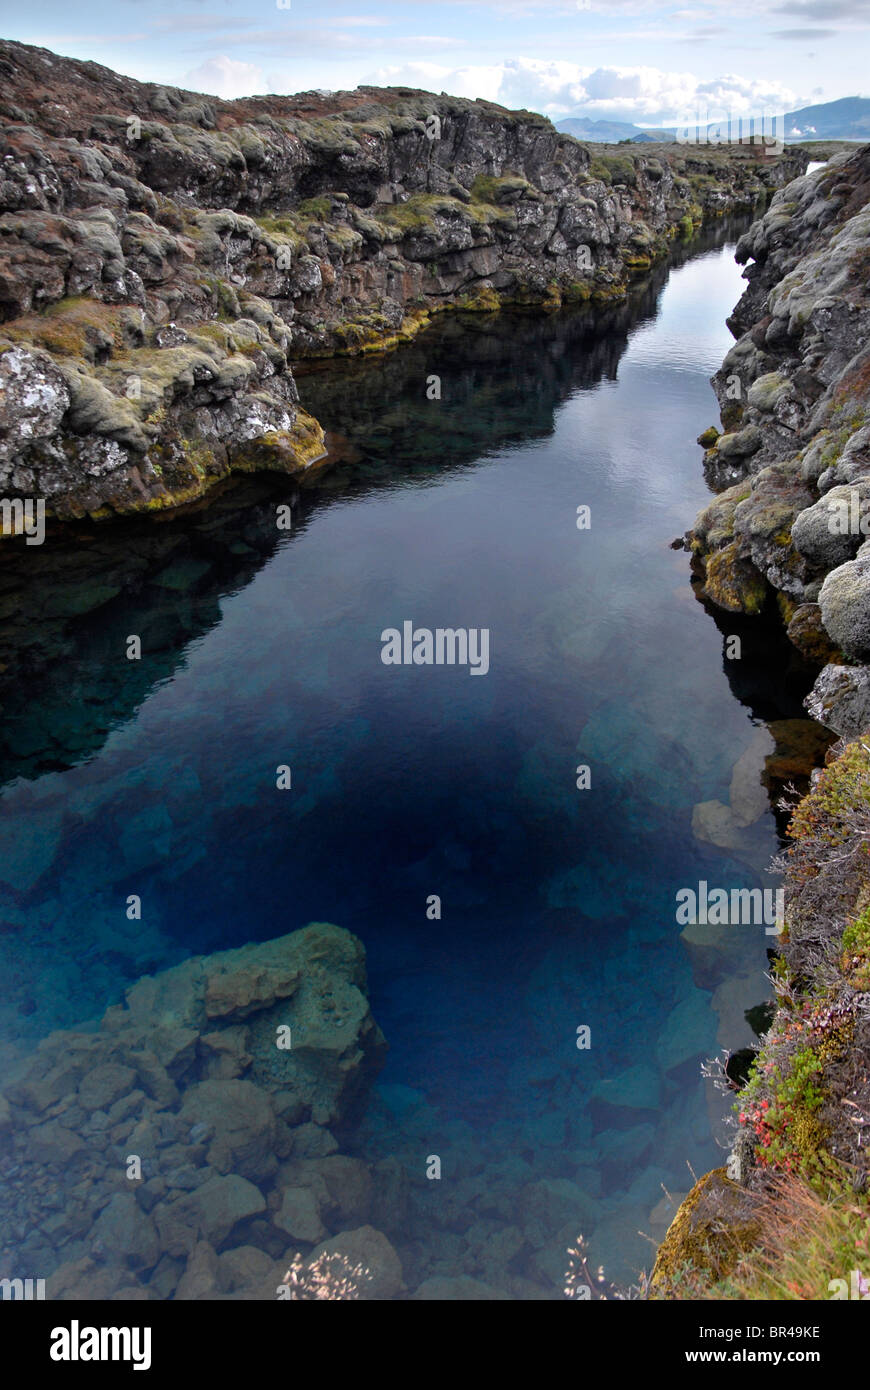 The Silfra fissure, Þingvellir, where the European and American Plates meet. - Stock Image